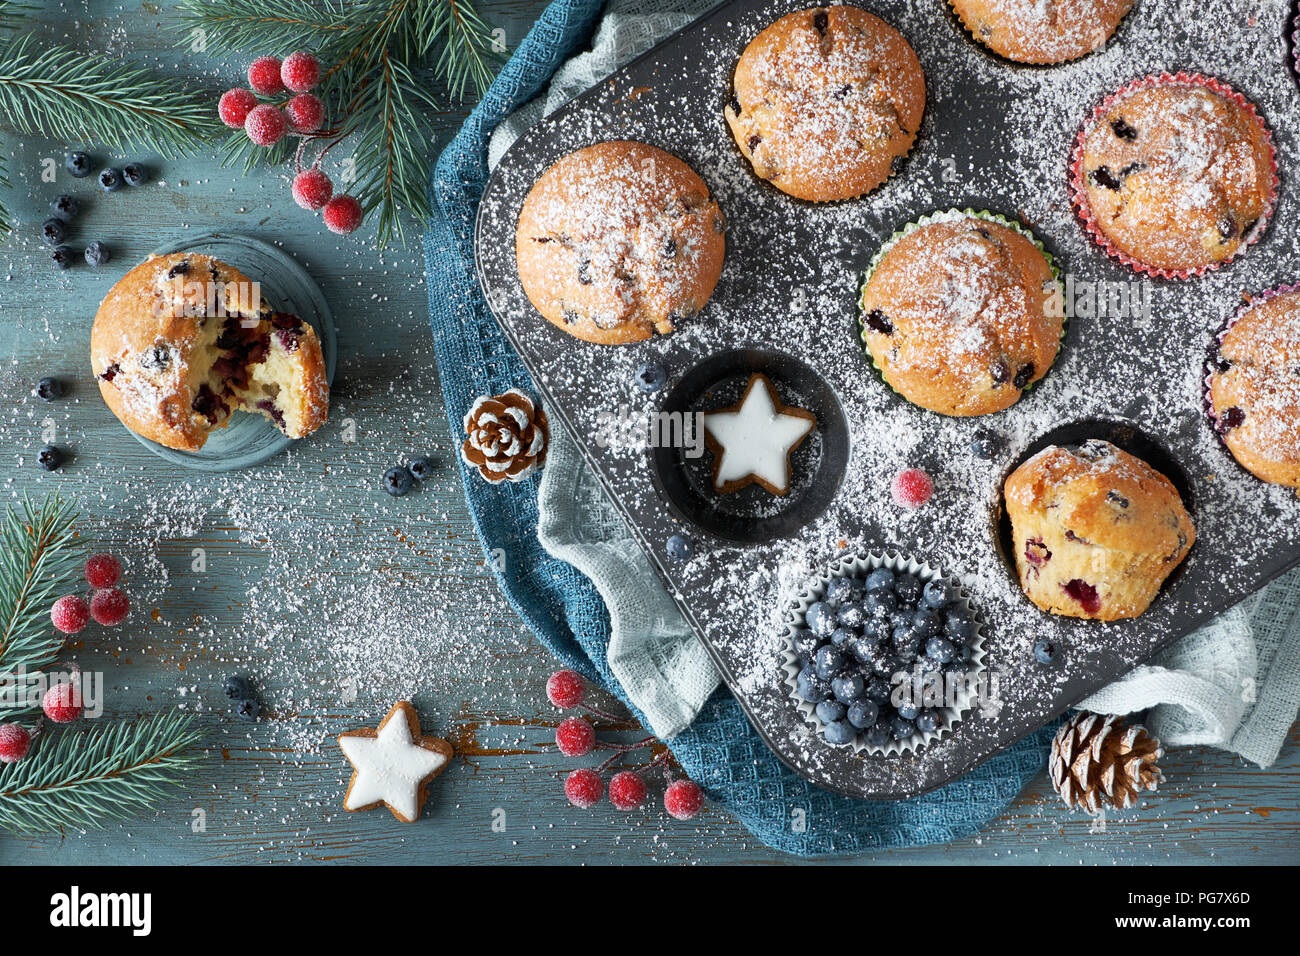 Blueberry muffins with sugar icing in a baking tray with Christmas decorations around, flat lay, view from above - Stock Image